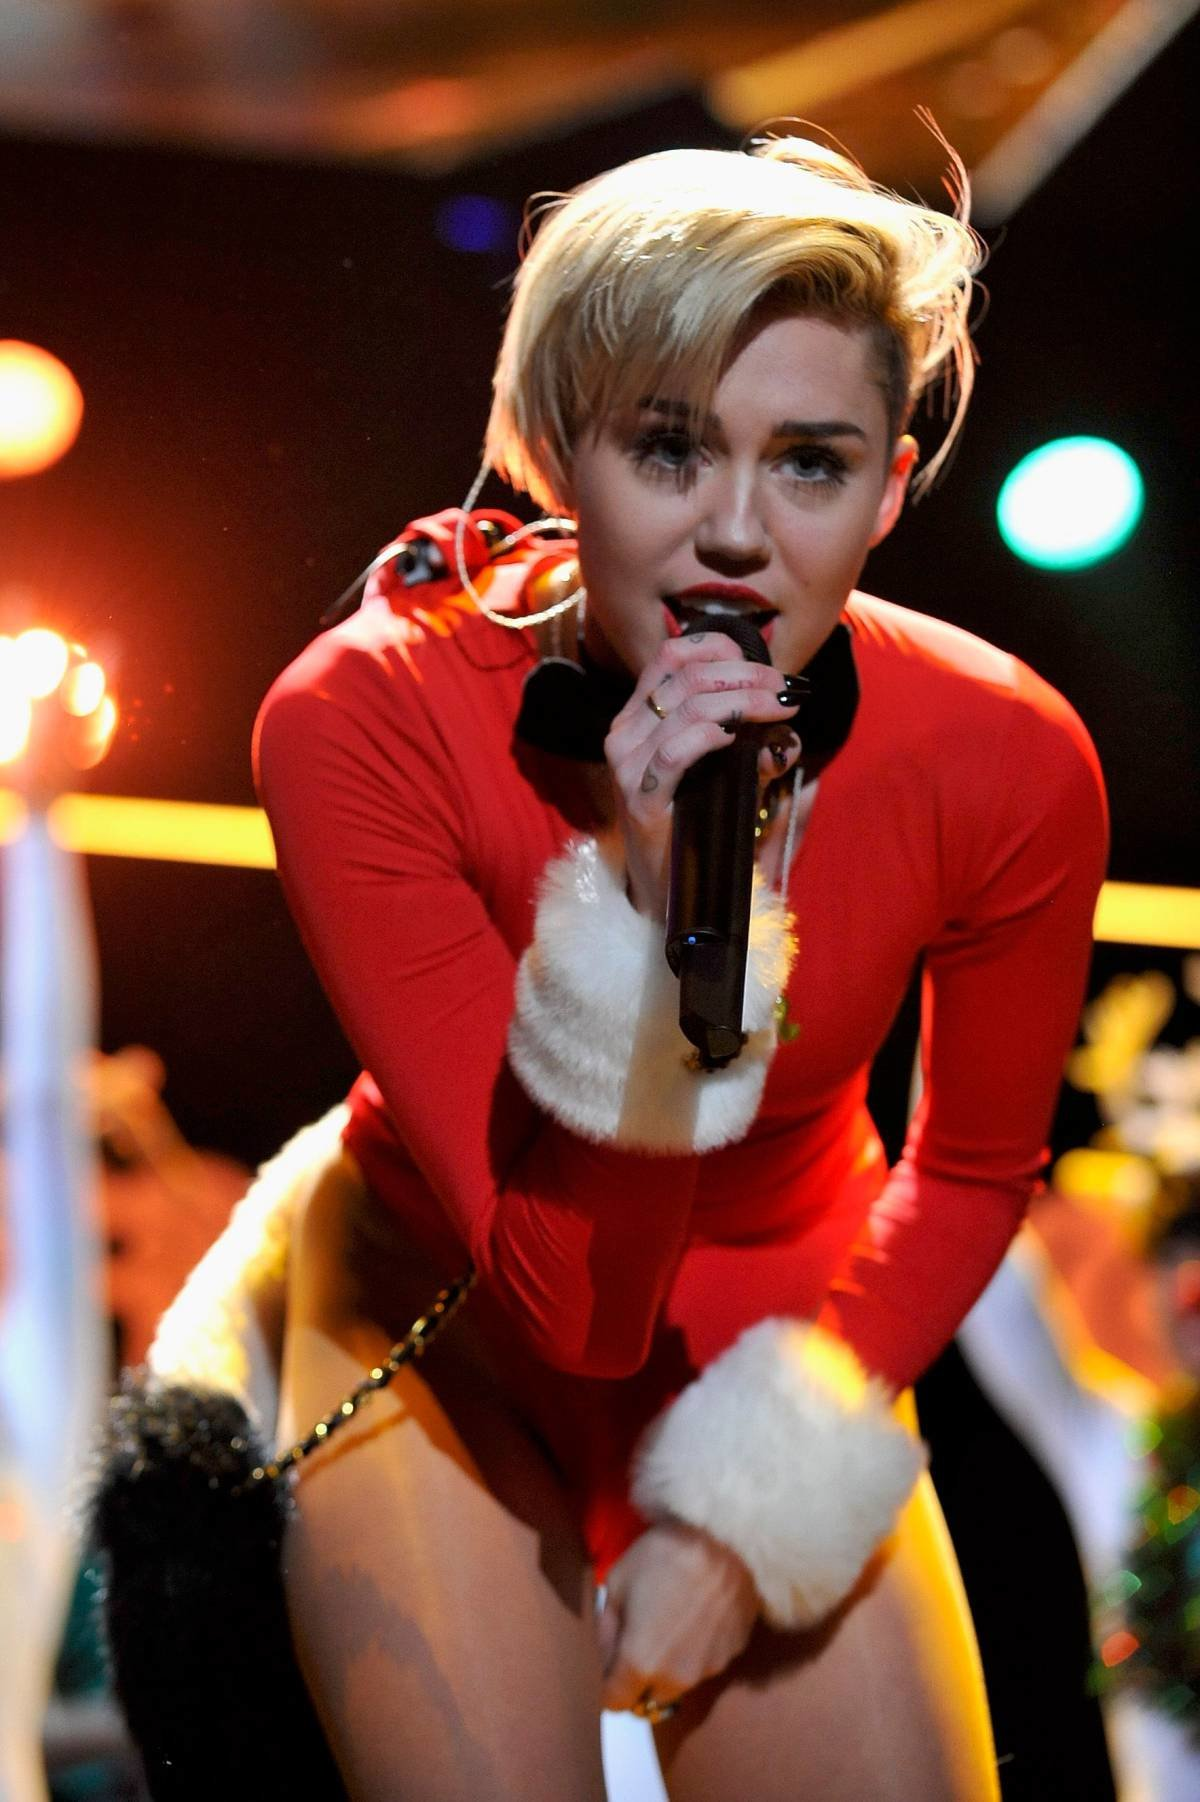 Miley Cyrus discography  Wikipedia